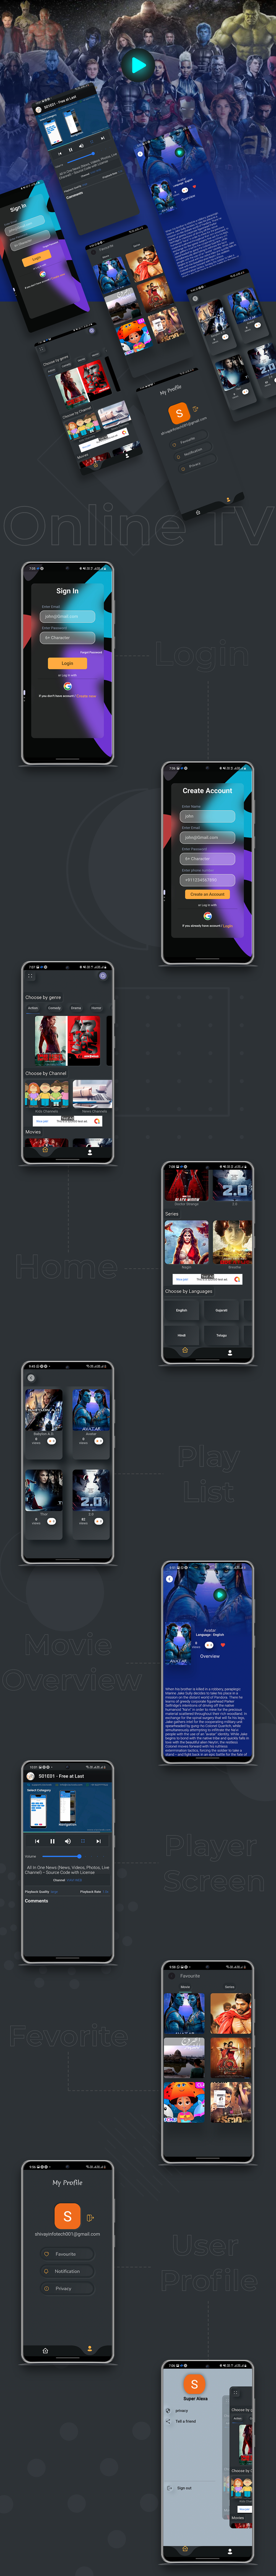 Online Movie Live tv App With PHP Admin Panel